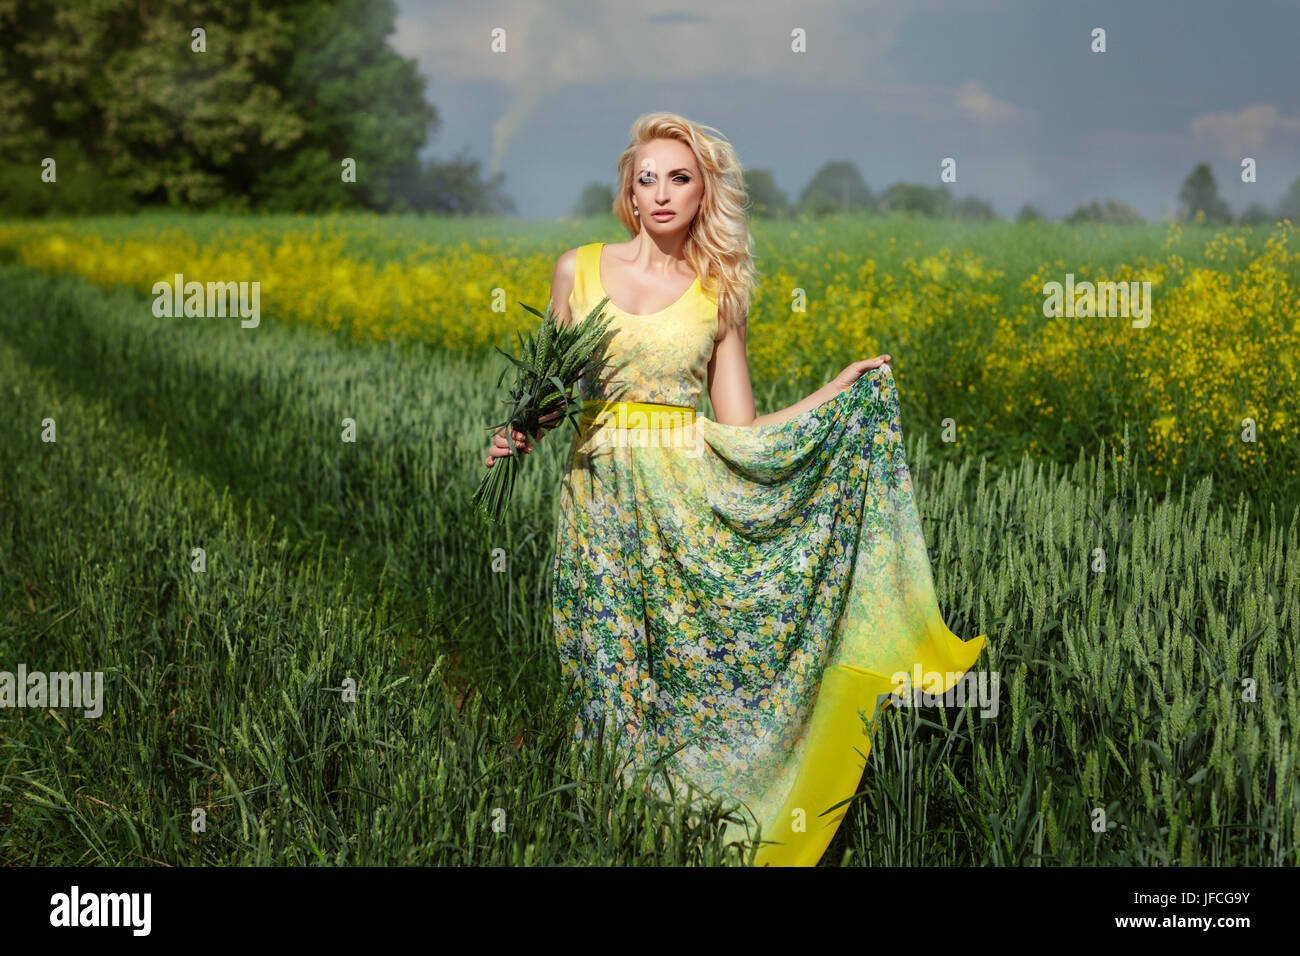 Beautiful blonde girl standing in a field with ears of corn in his hand. - Stock Image